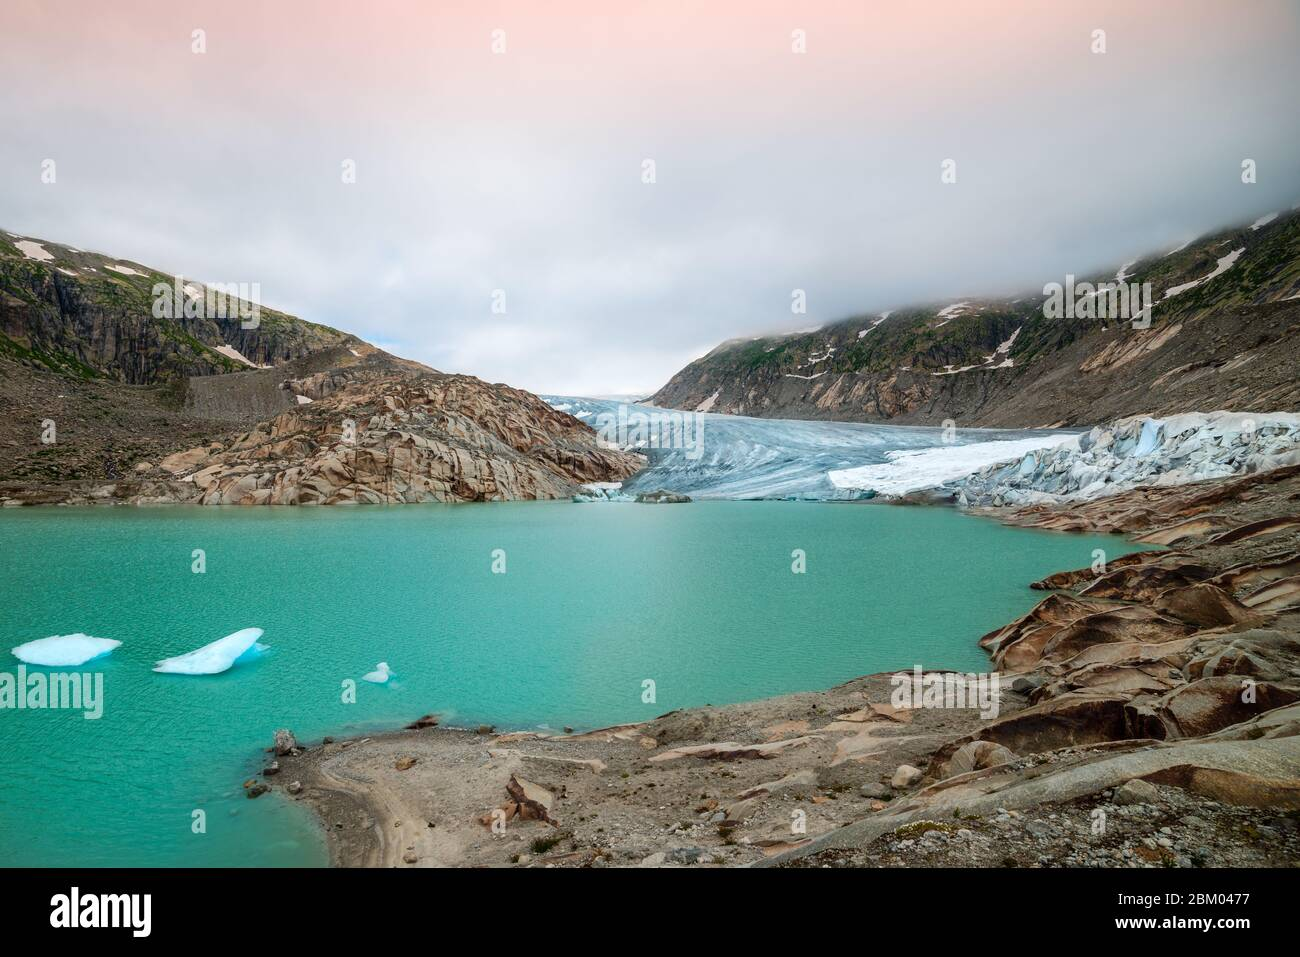 mighty glacier at sunrise in the swiss alps. The Rhone glacier and its glacier tongue lake on the street of the Furka pass at an altitude of 2200m Stock Photo